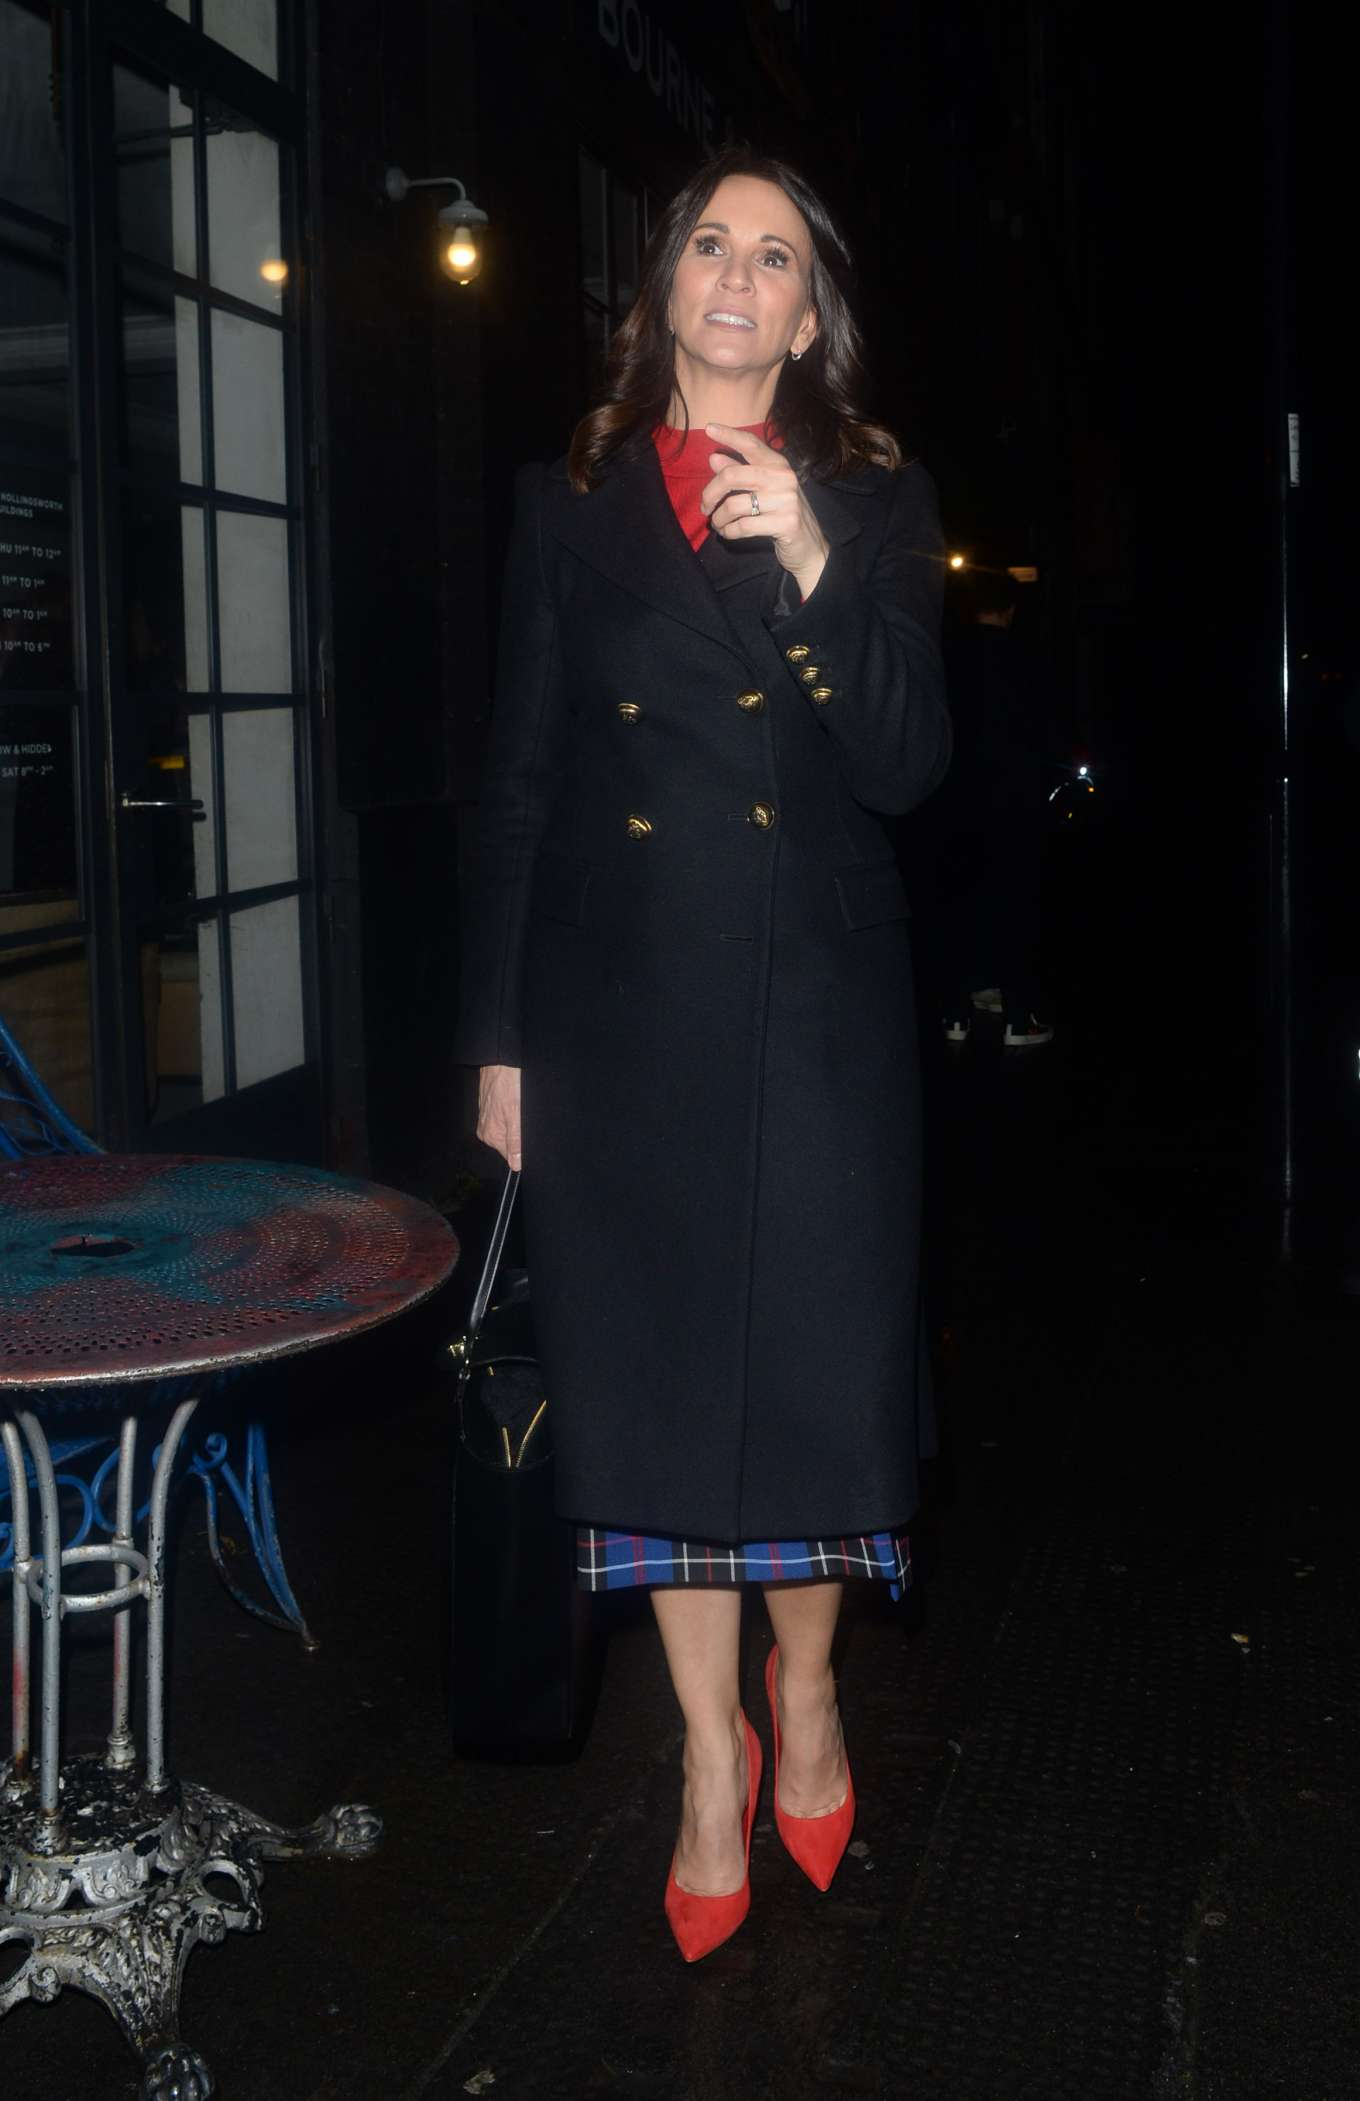 Andrea McLean - Arrives at Frankie Bridge's Book Signing in East London